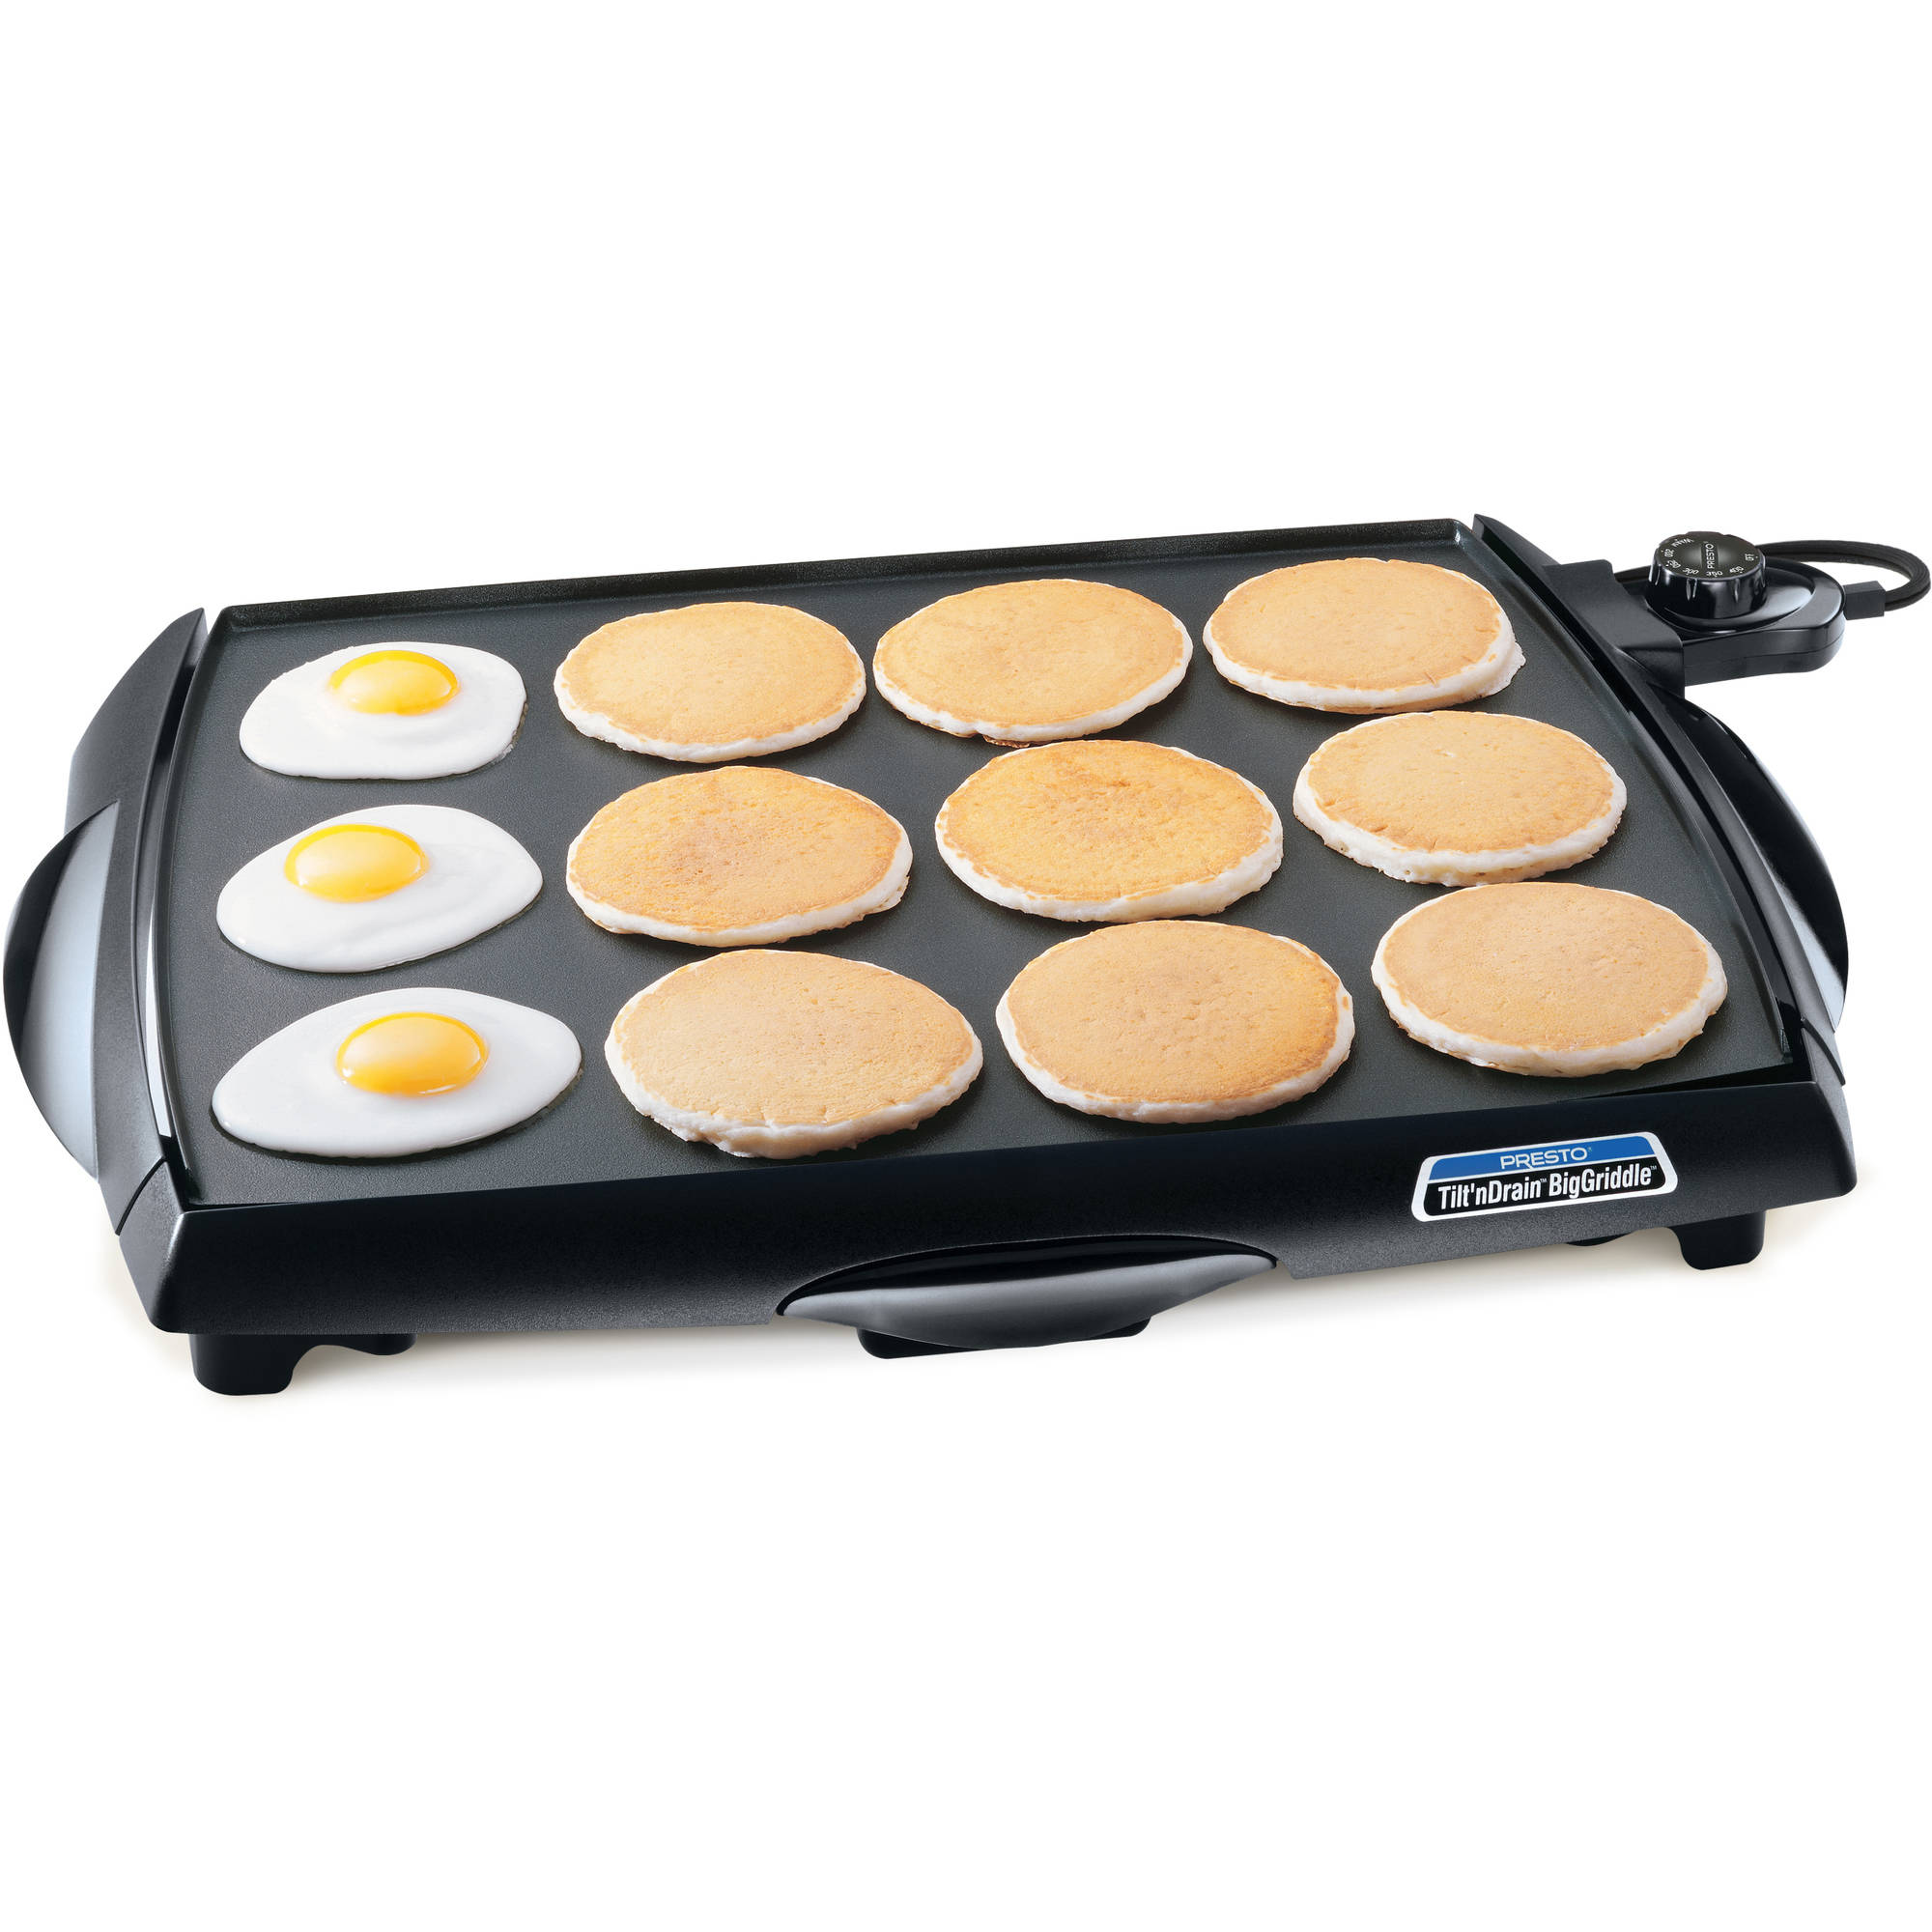 Presto Tilt'nDrain��� BigGriddle�� cool-touch griddle